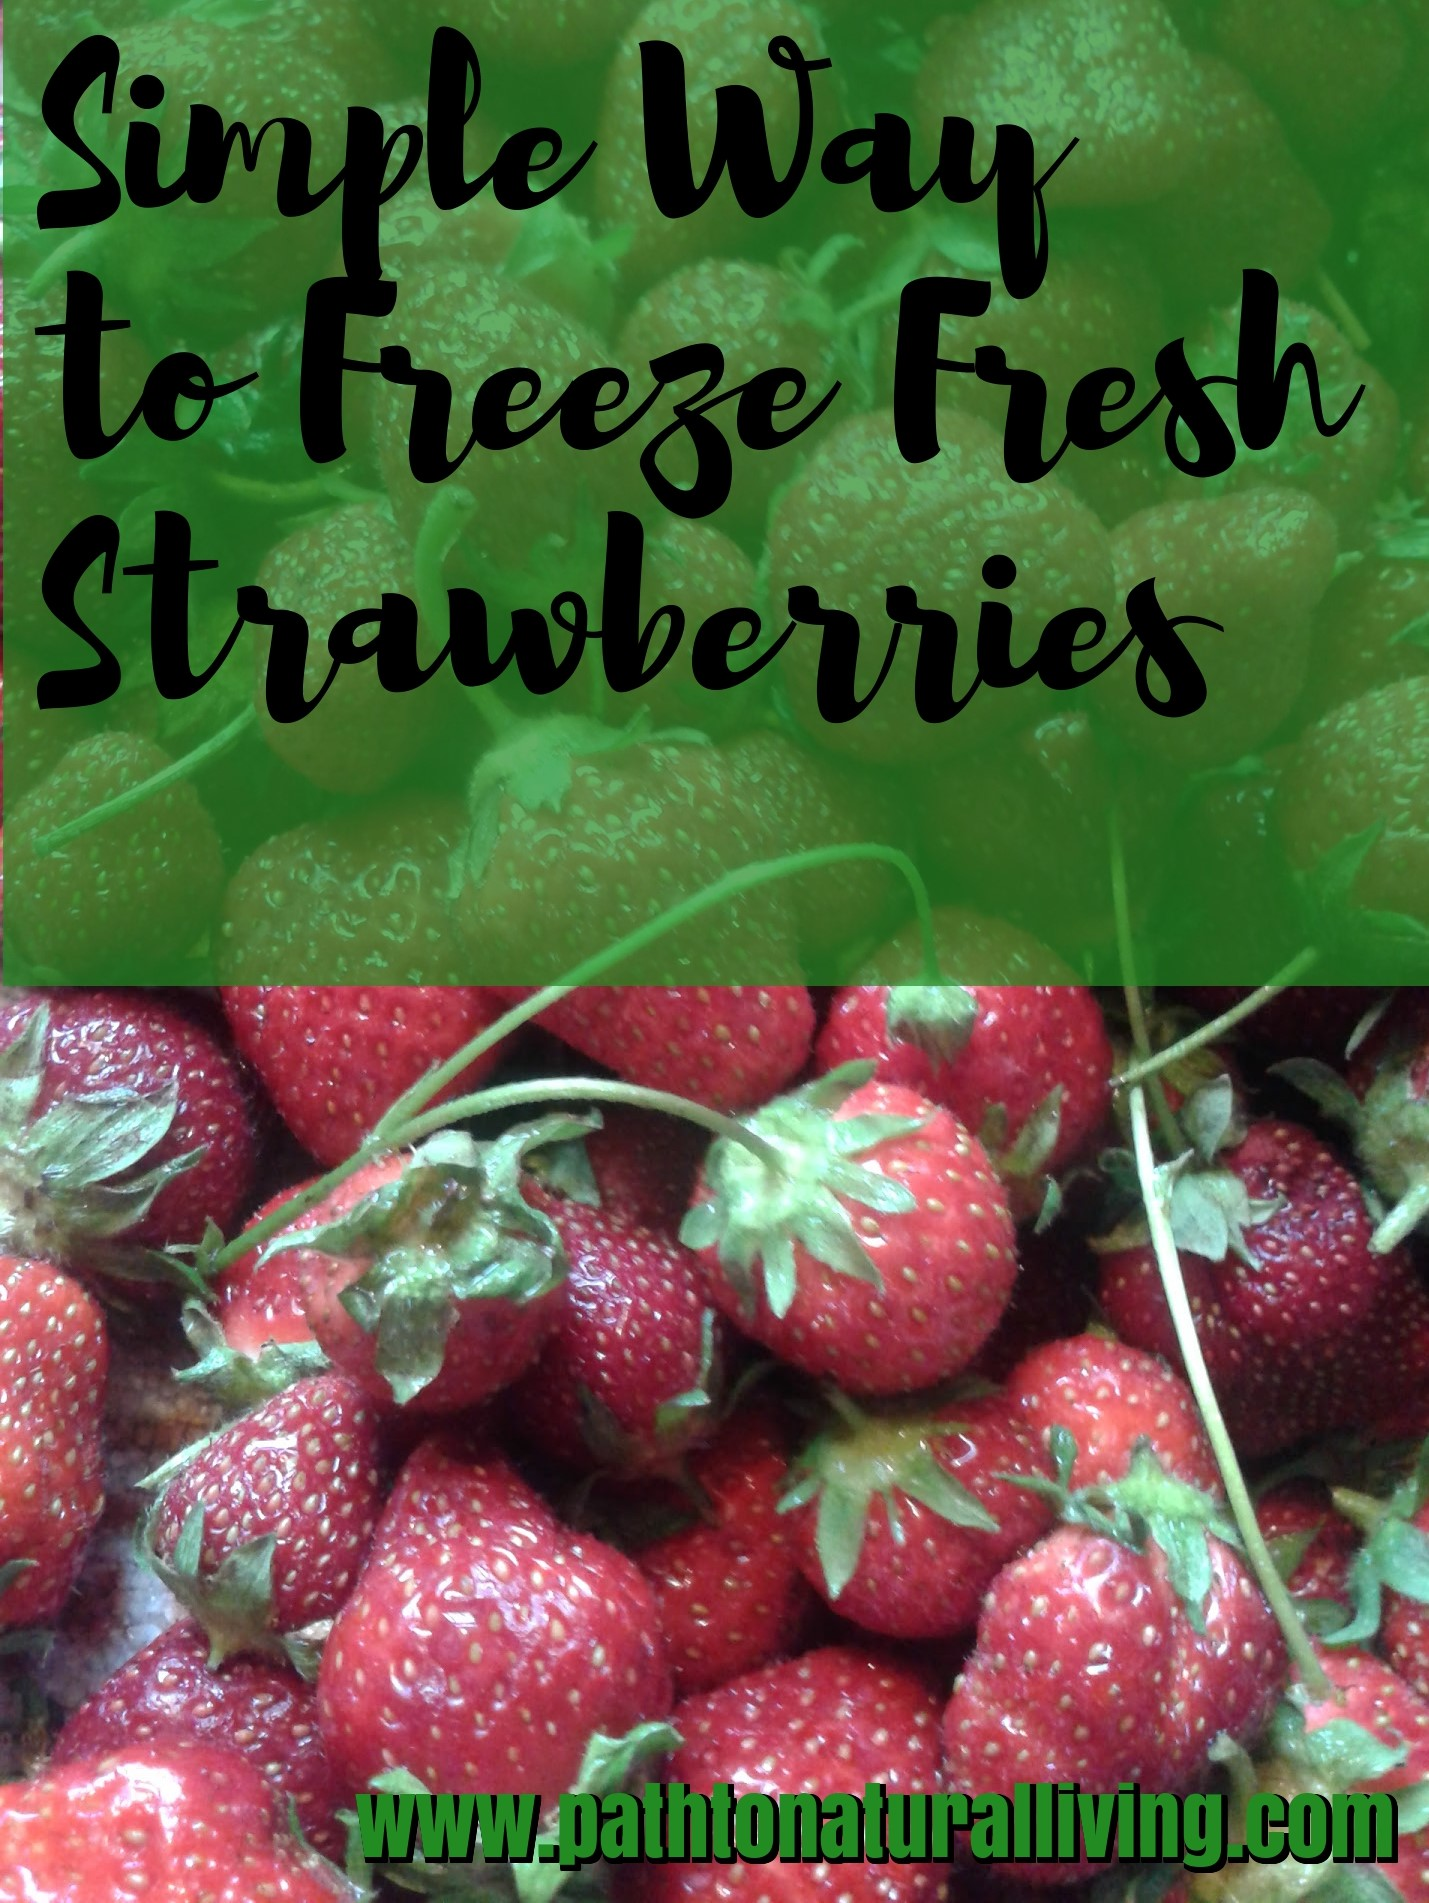 How to Freeze Strawberries for Smoothies